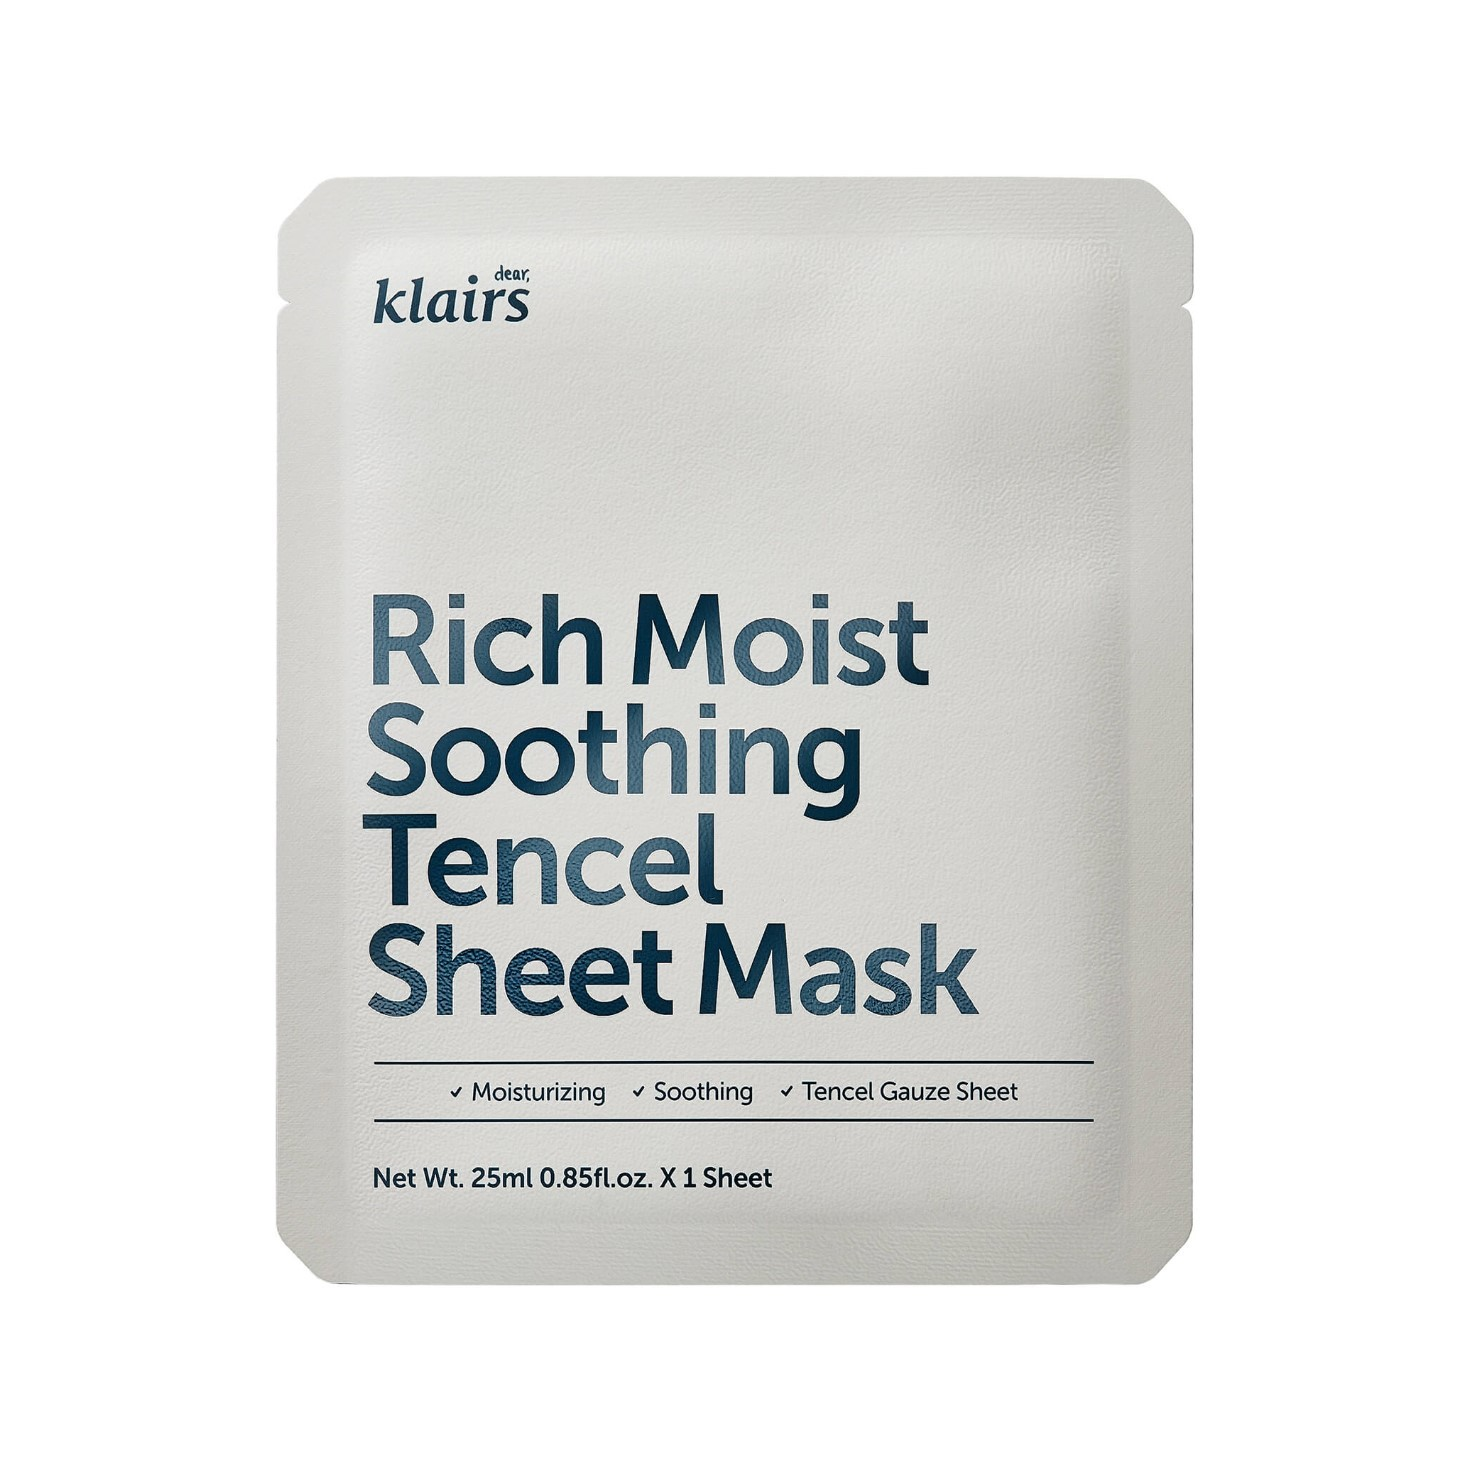 Dear, Klairs - Rich Moist Soothing Tencel Sheet Mask